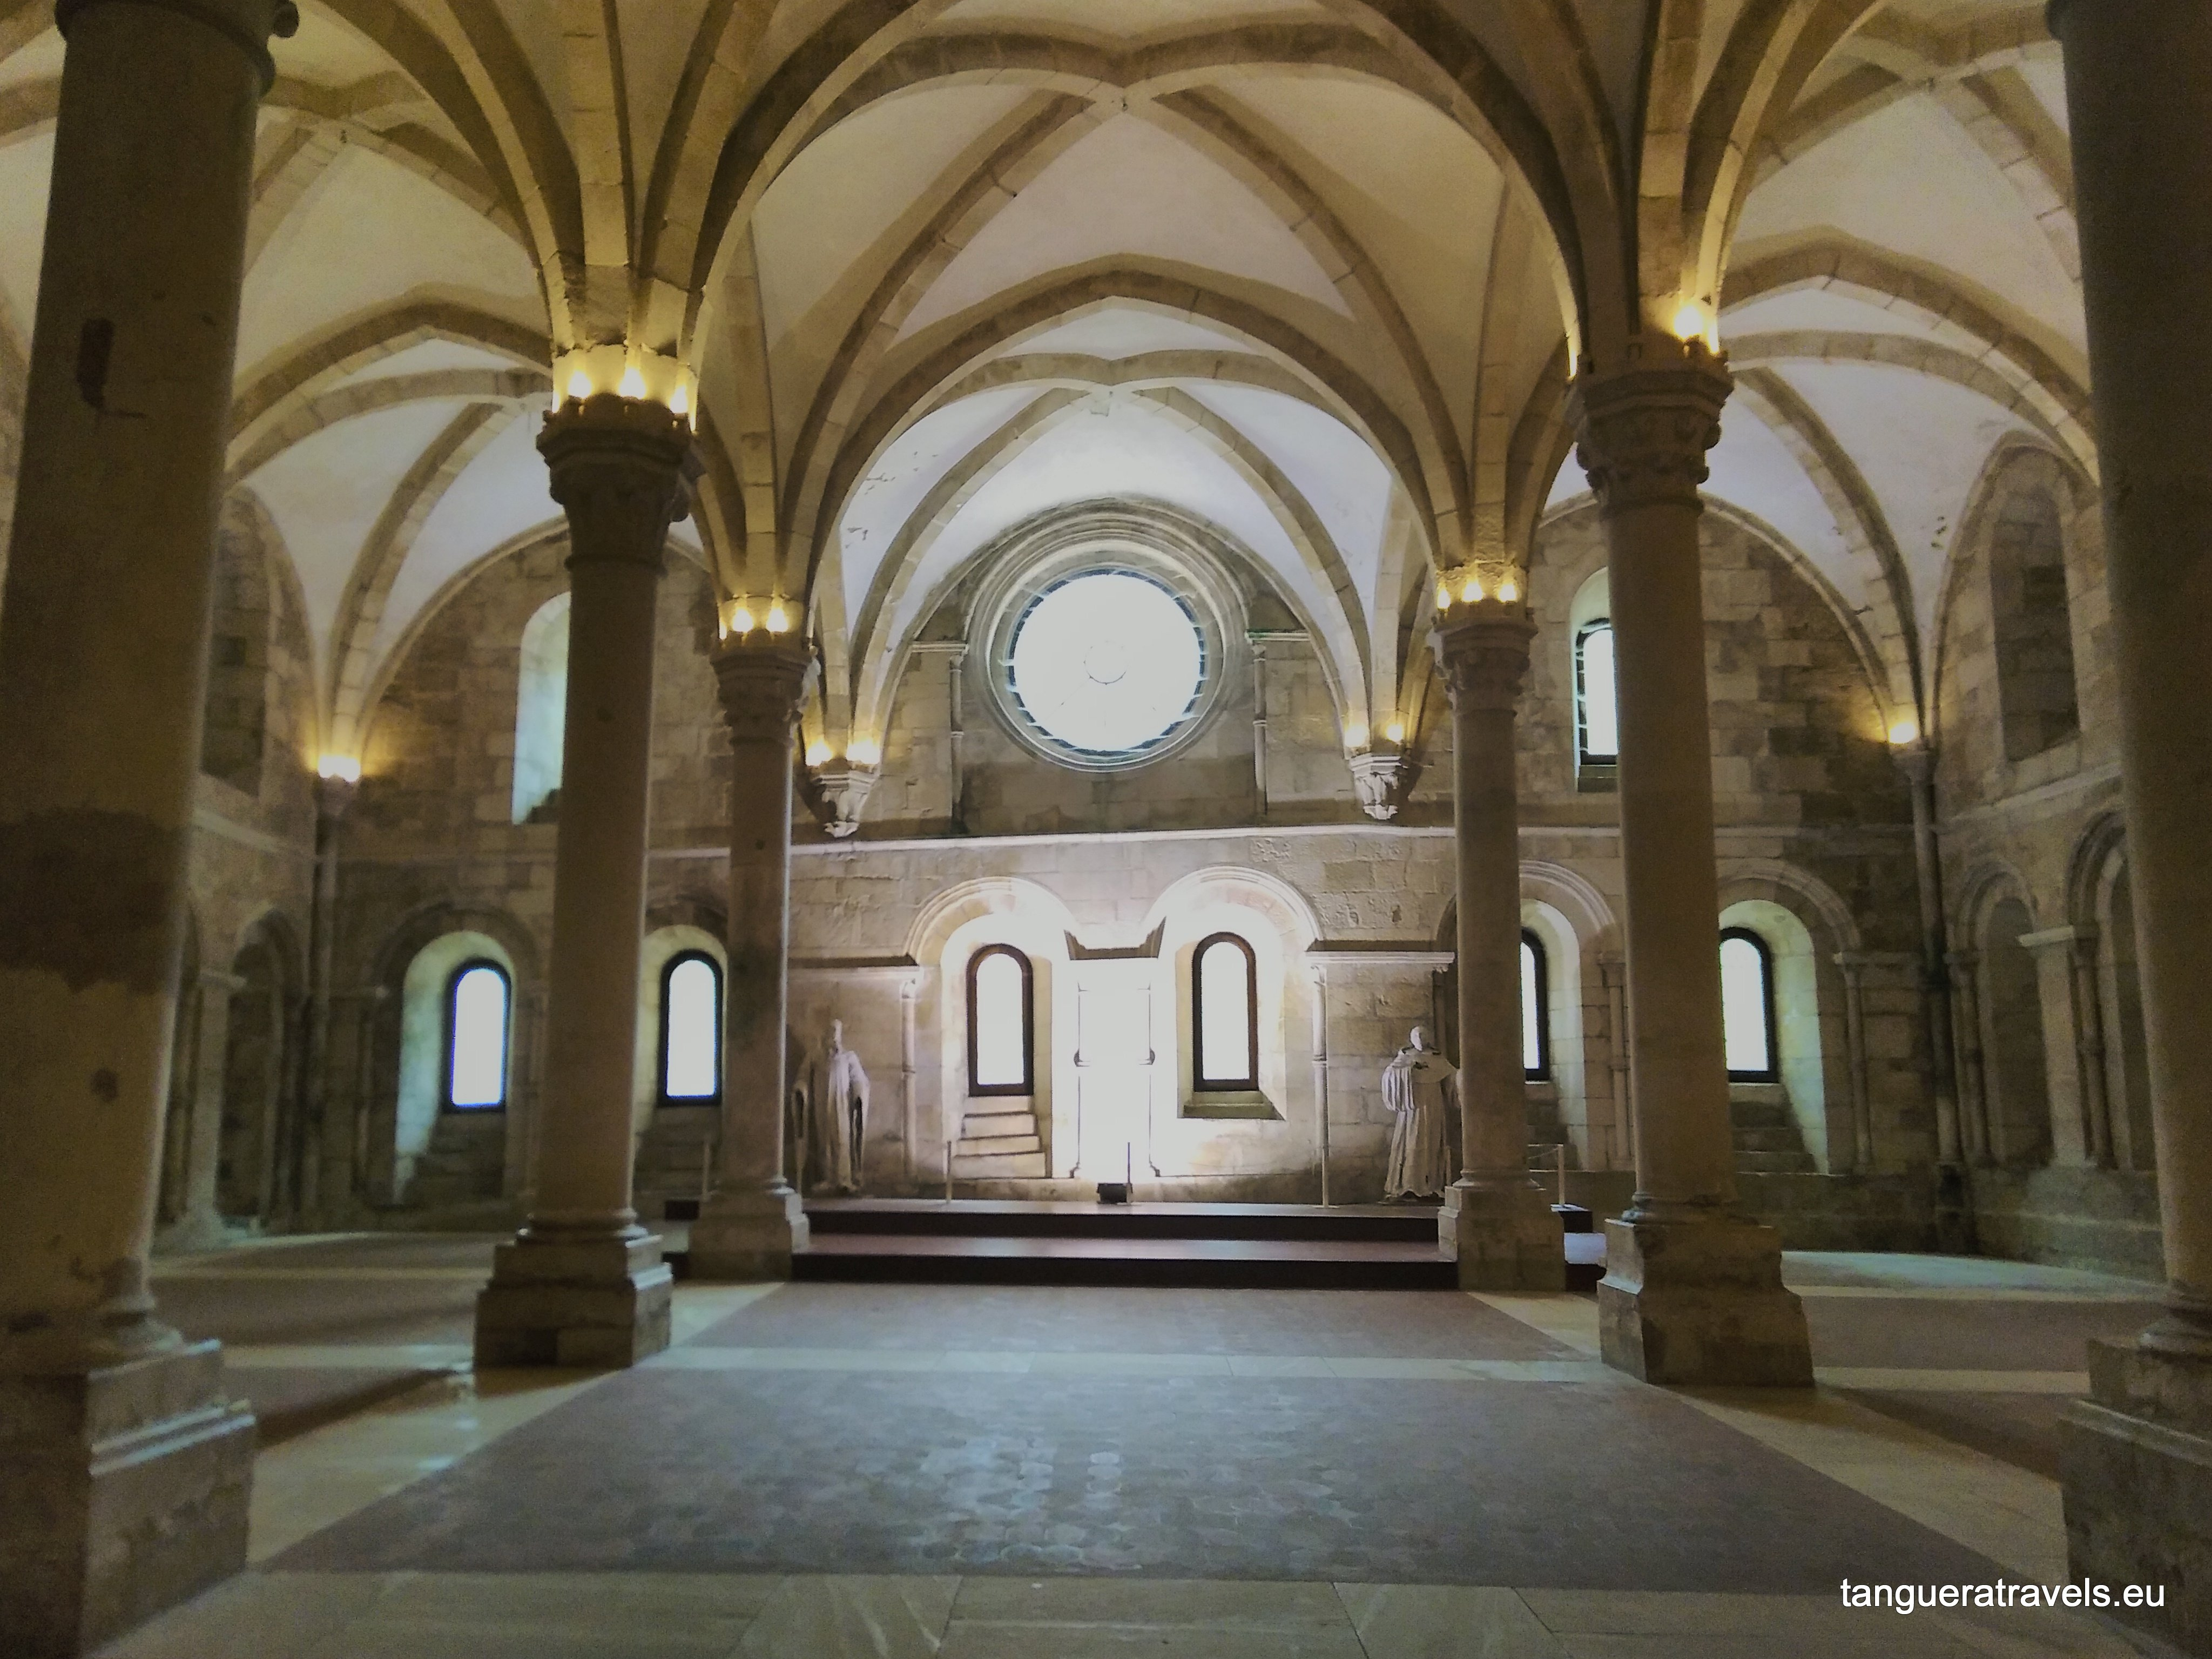 Refectory of the monastery in Alcobaça